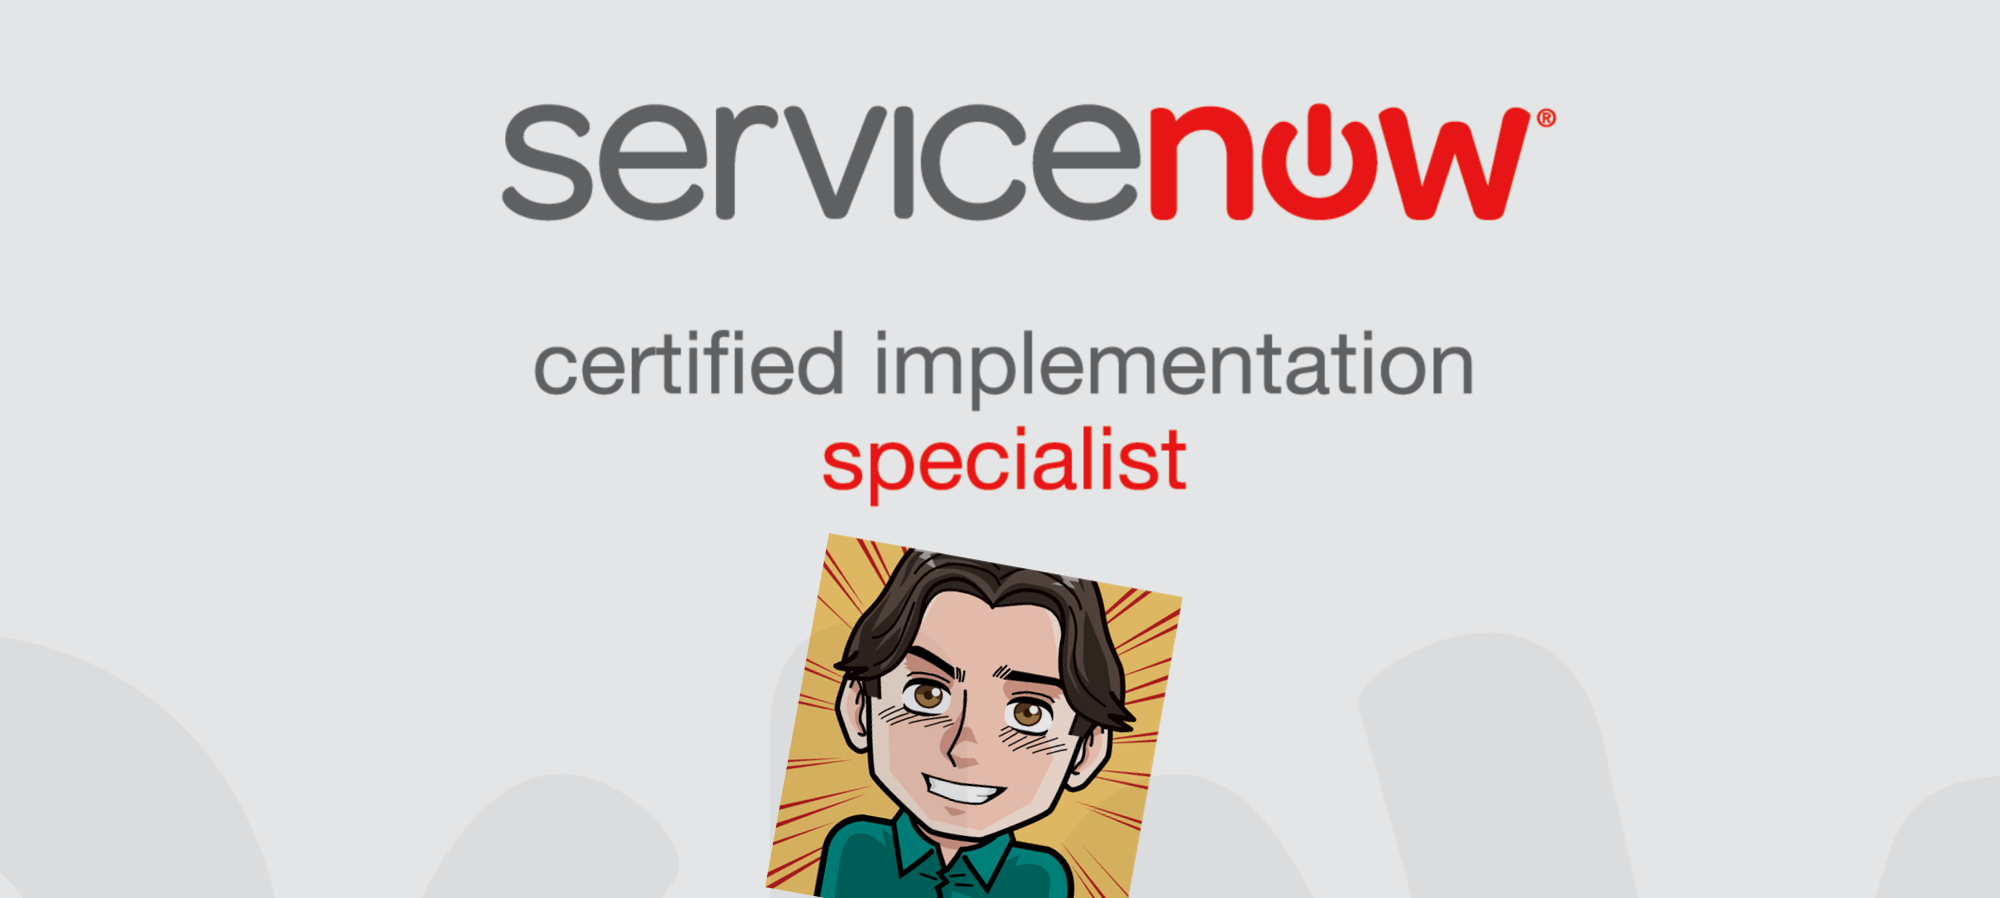 Exam Review Certified Implementation Specialist Itsm Servicenow